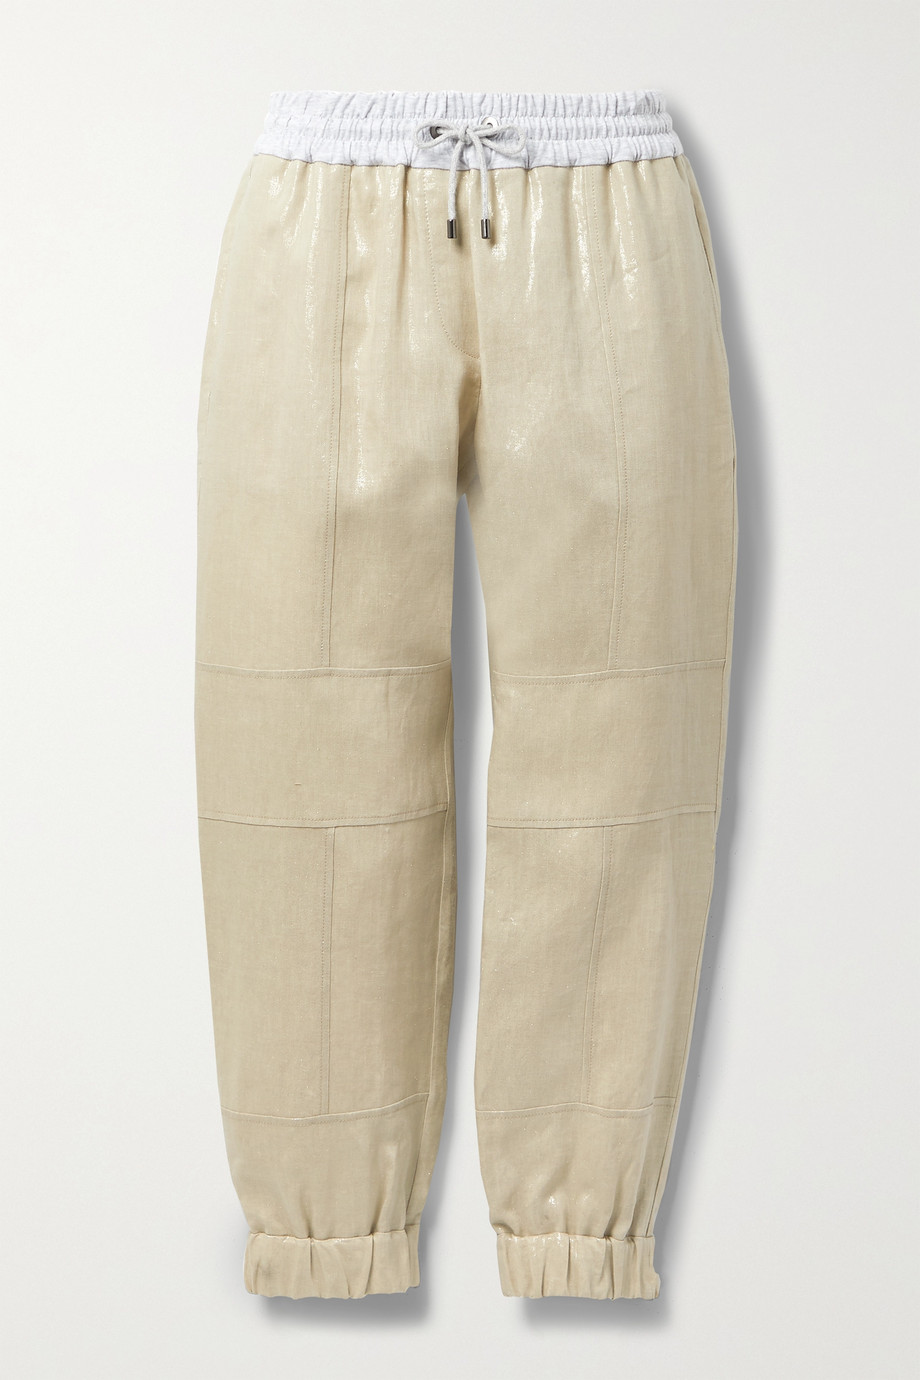 Brunello Cucinelli Cotton-blend jersey-trimmed metallic linen track pants